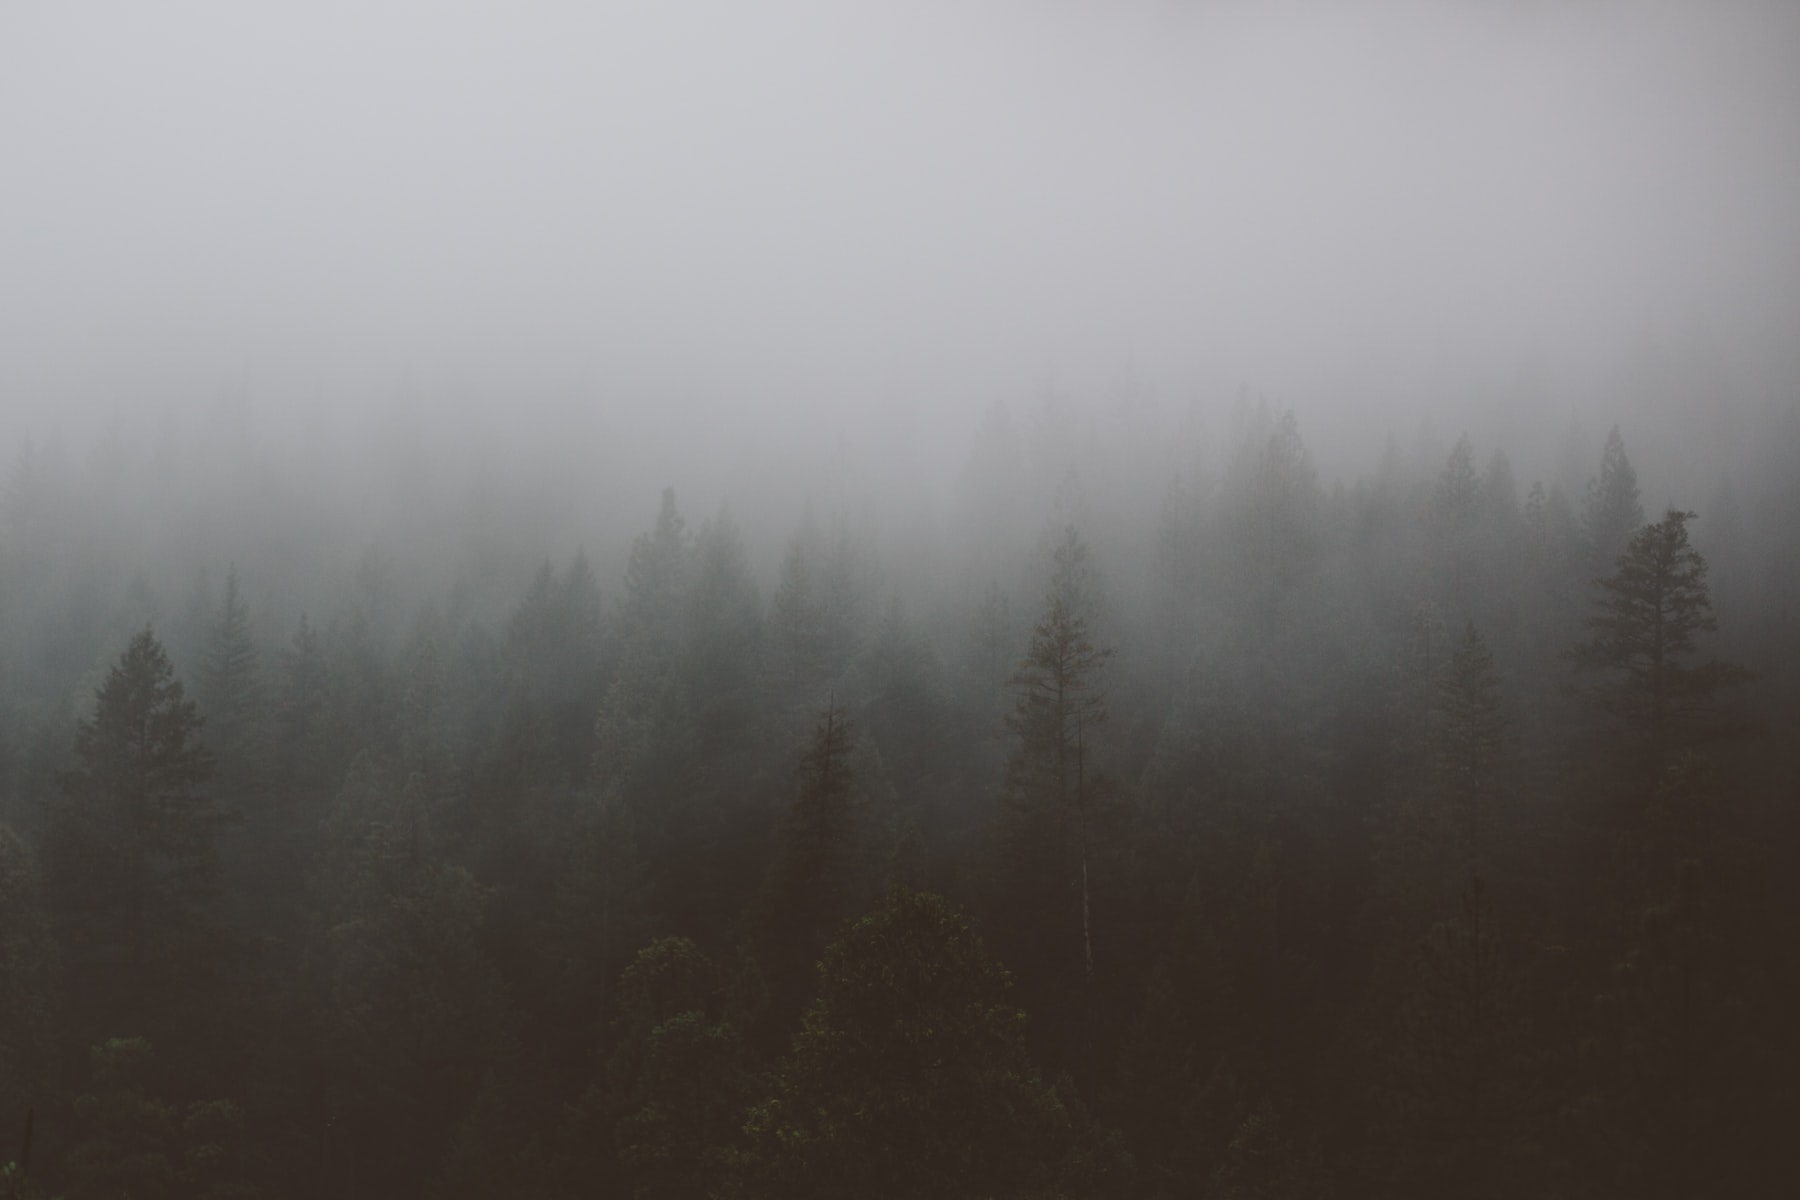 A gloomy shot of a dark evergreen forest shrouded in a thick gray mist